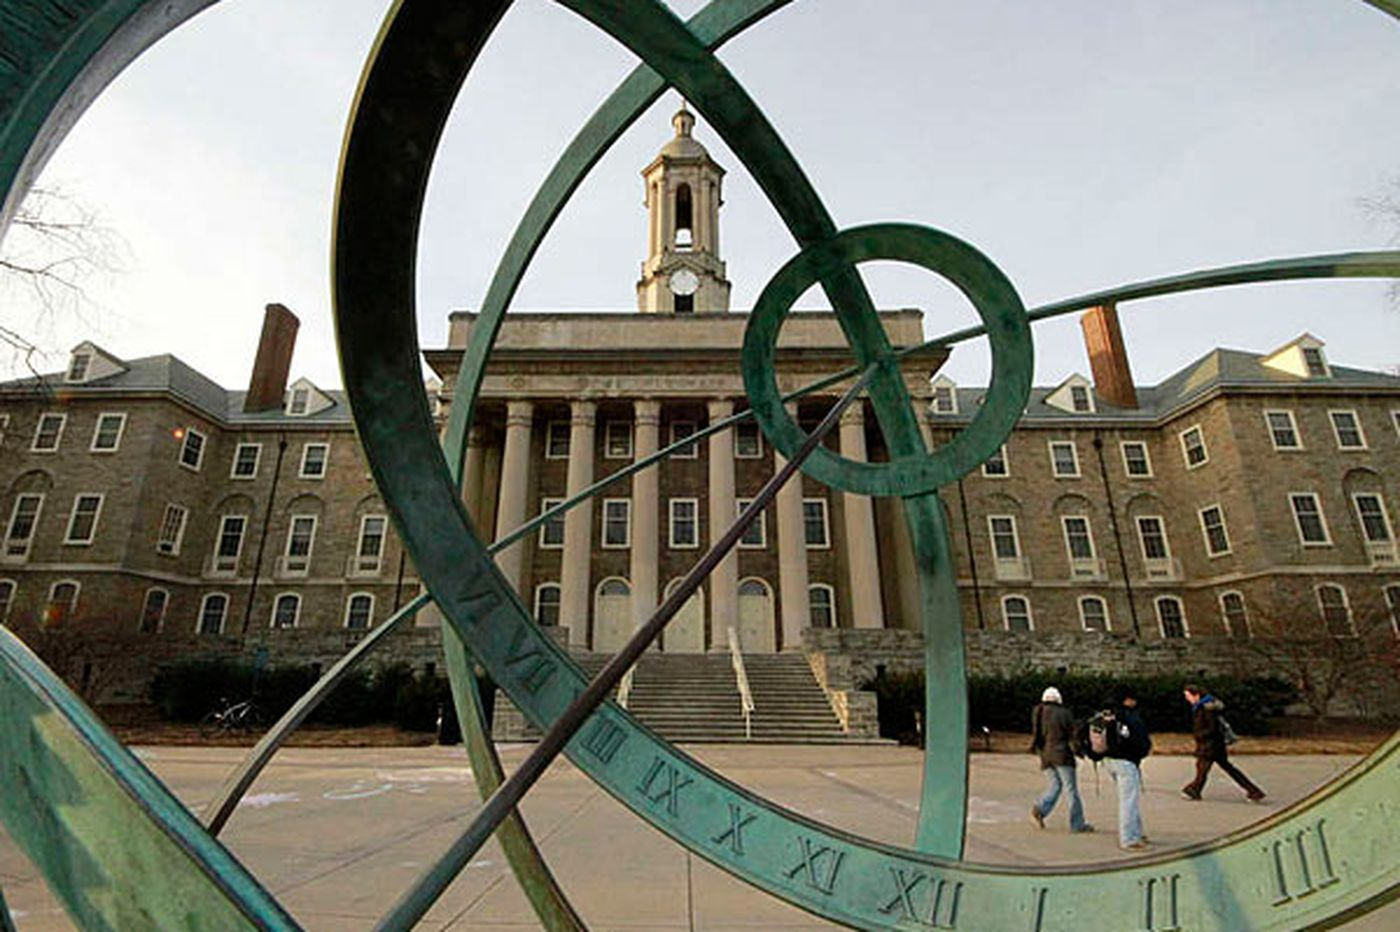 At Penn St., a natural gas expansion